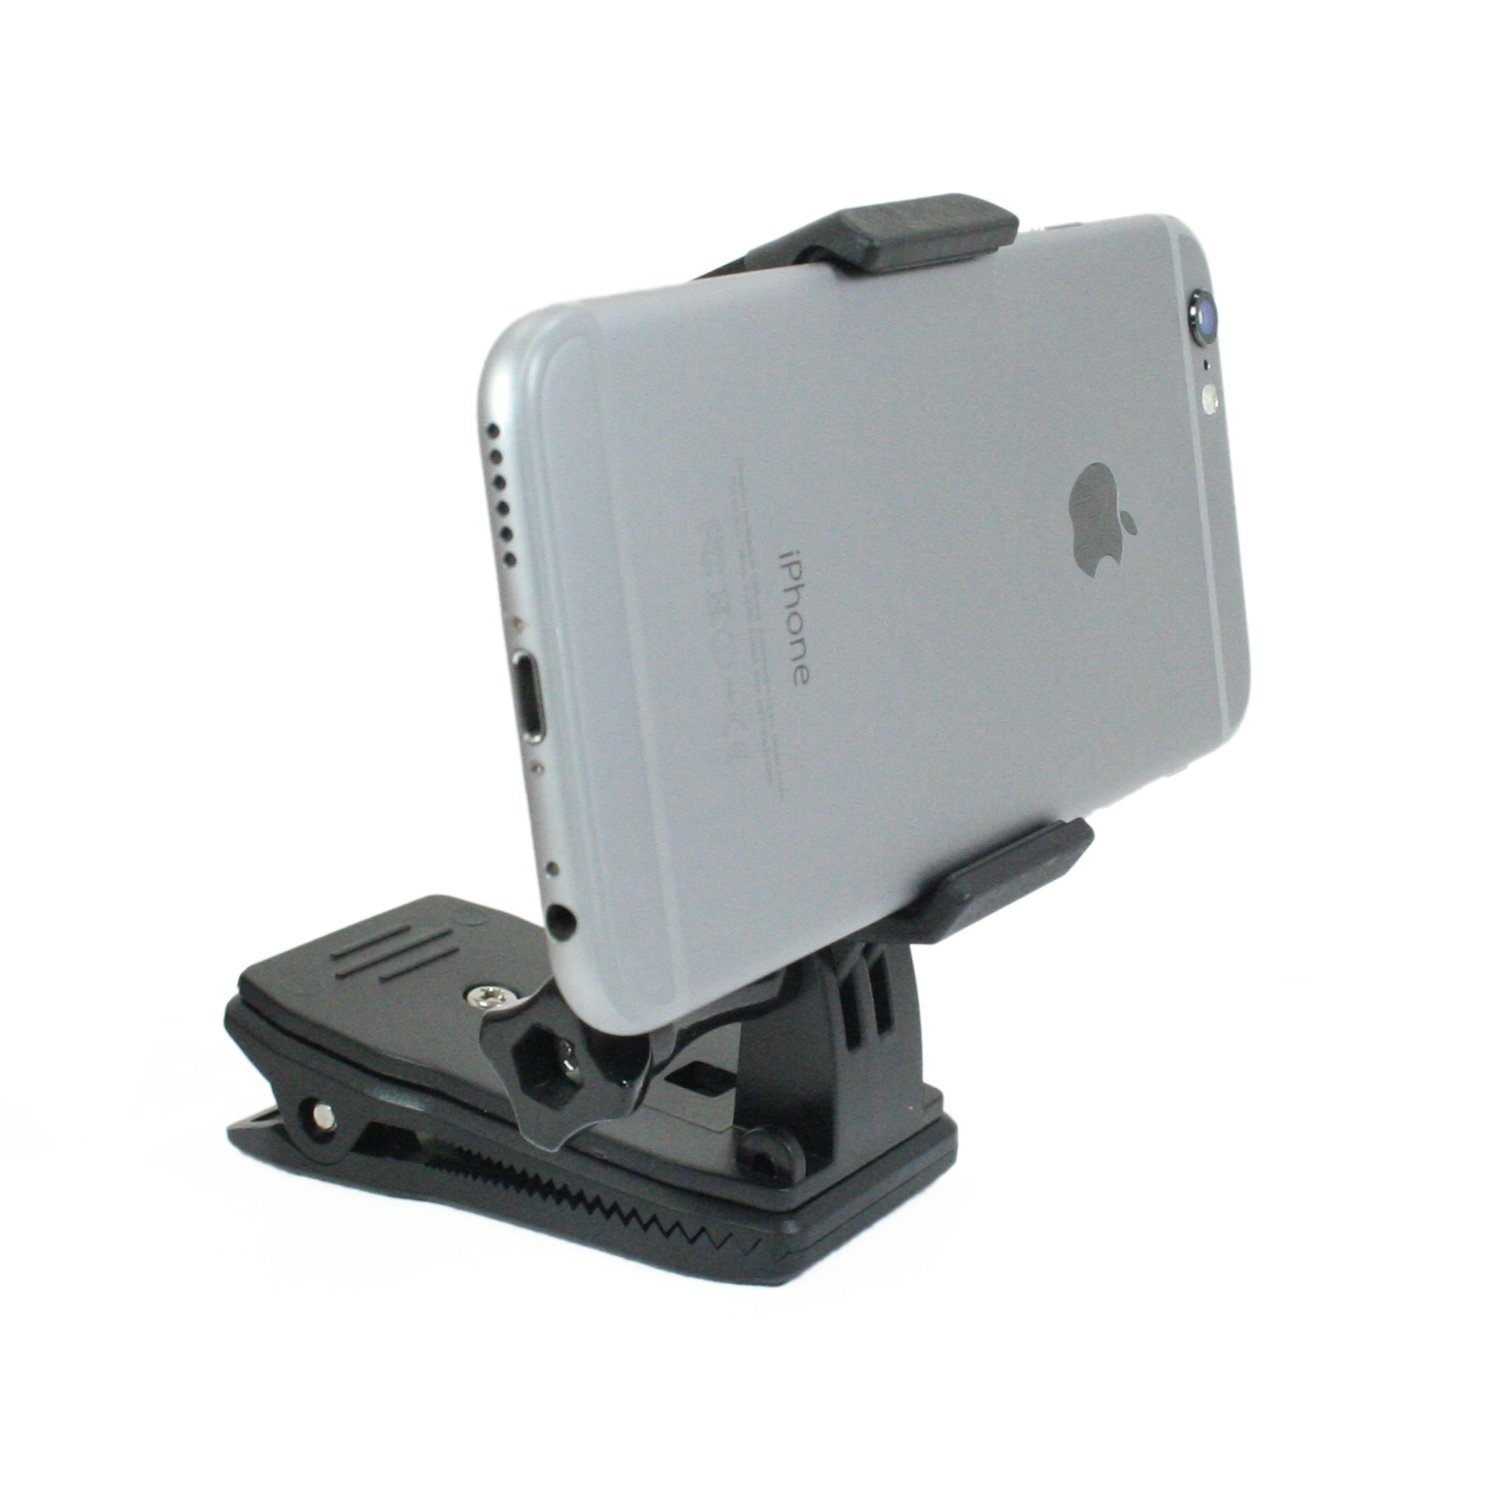 Livestream Gear® - Backpack Clip Mount with Locking Phone Clamp. Great Mount for Smartphone, or GoPro Camera. Use for Live Streaming, or Video Recording. (Clip & Phone Clamp)